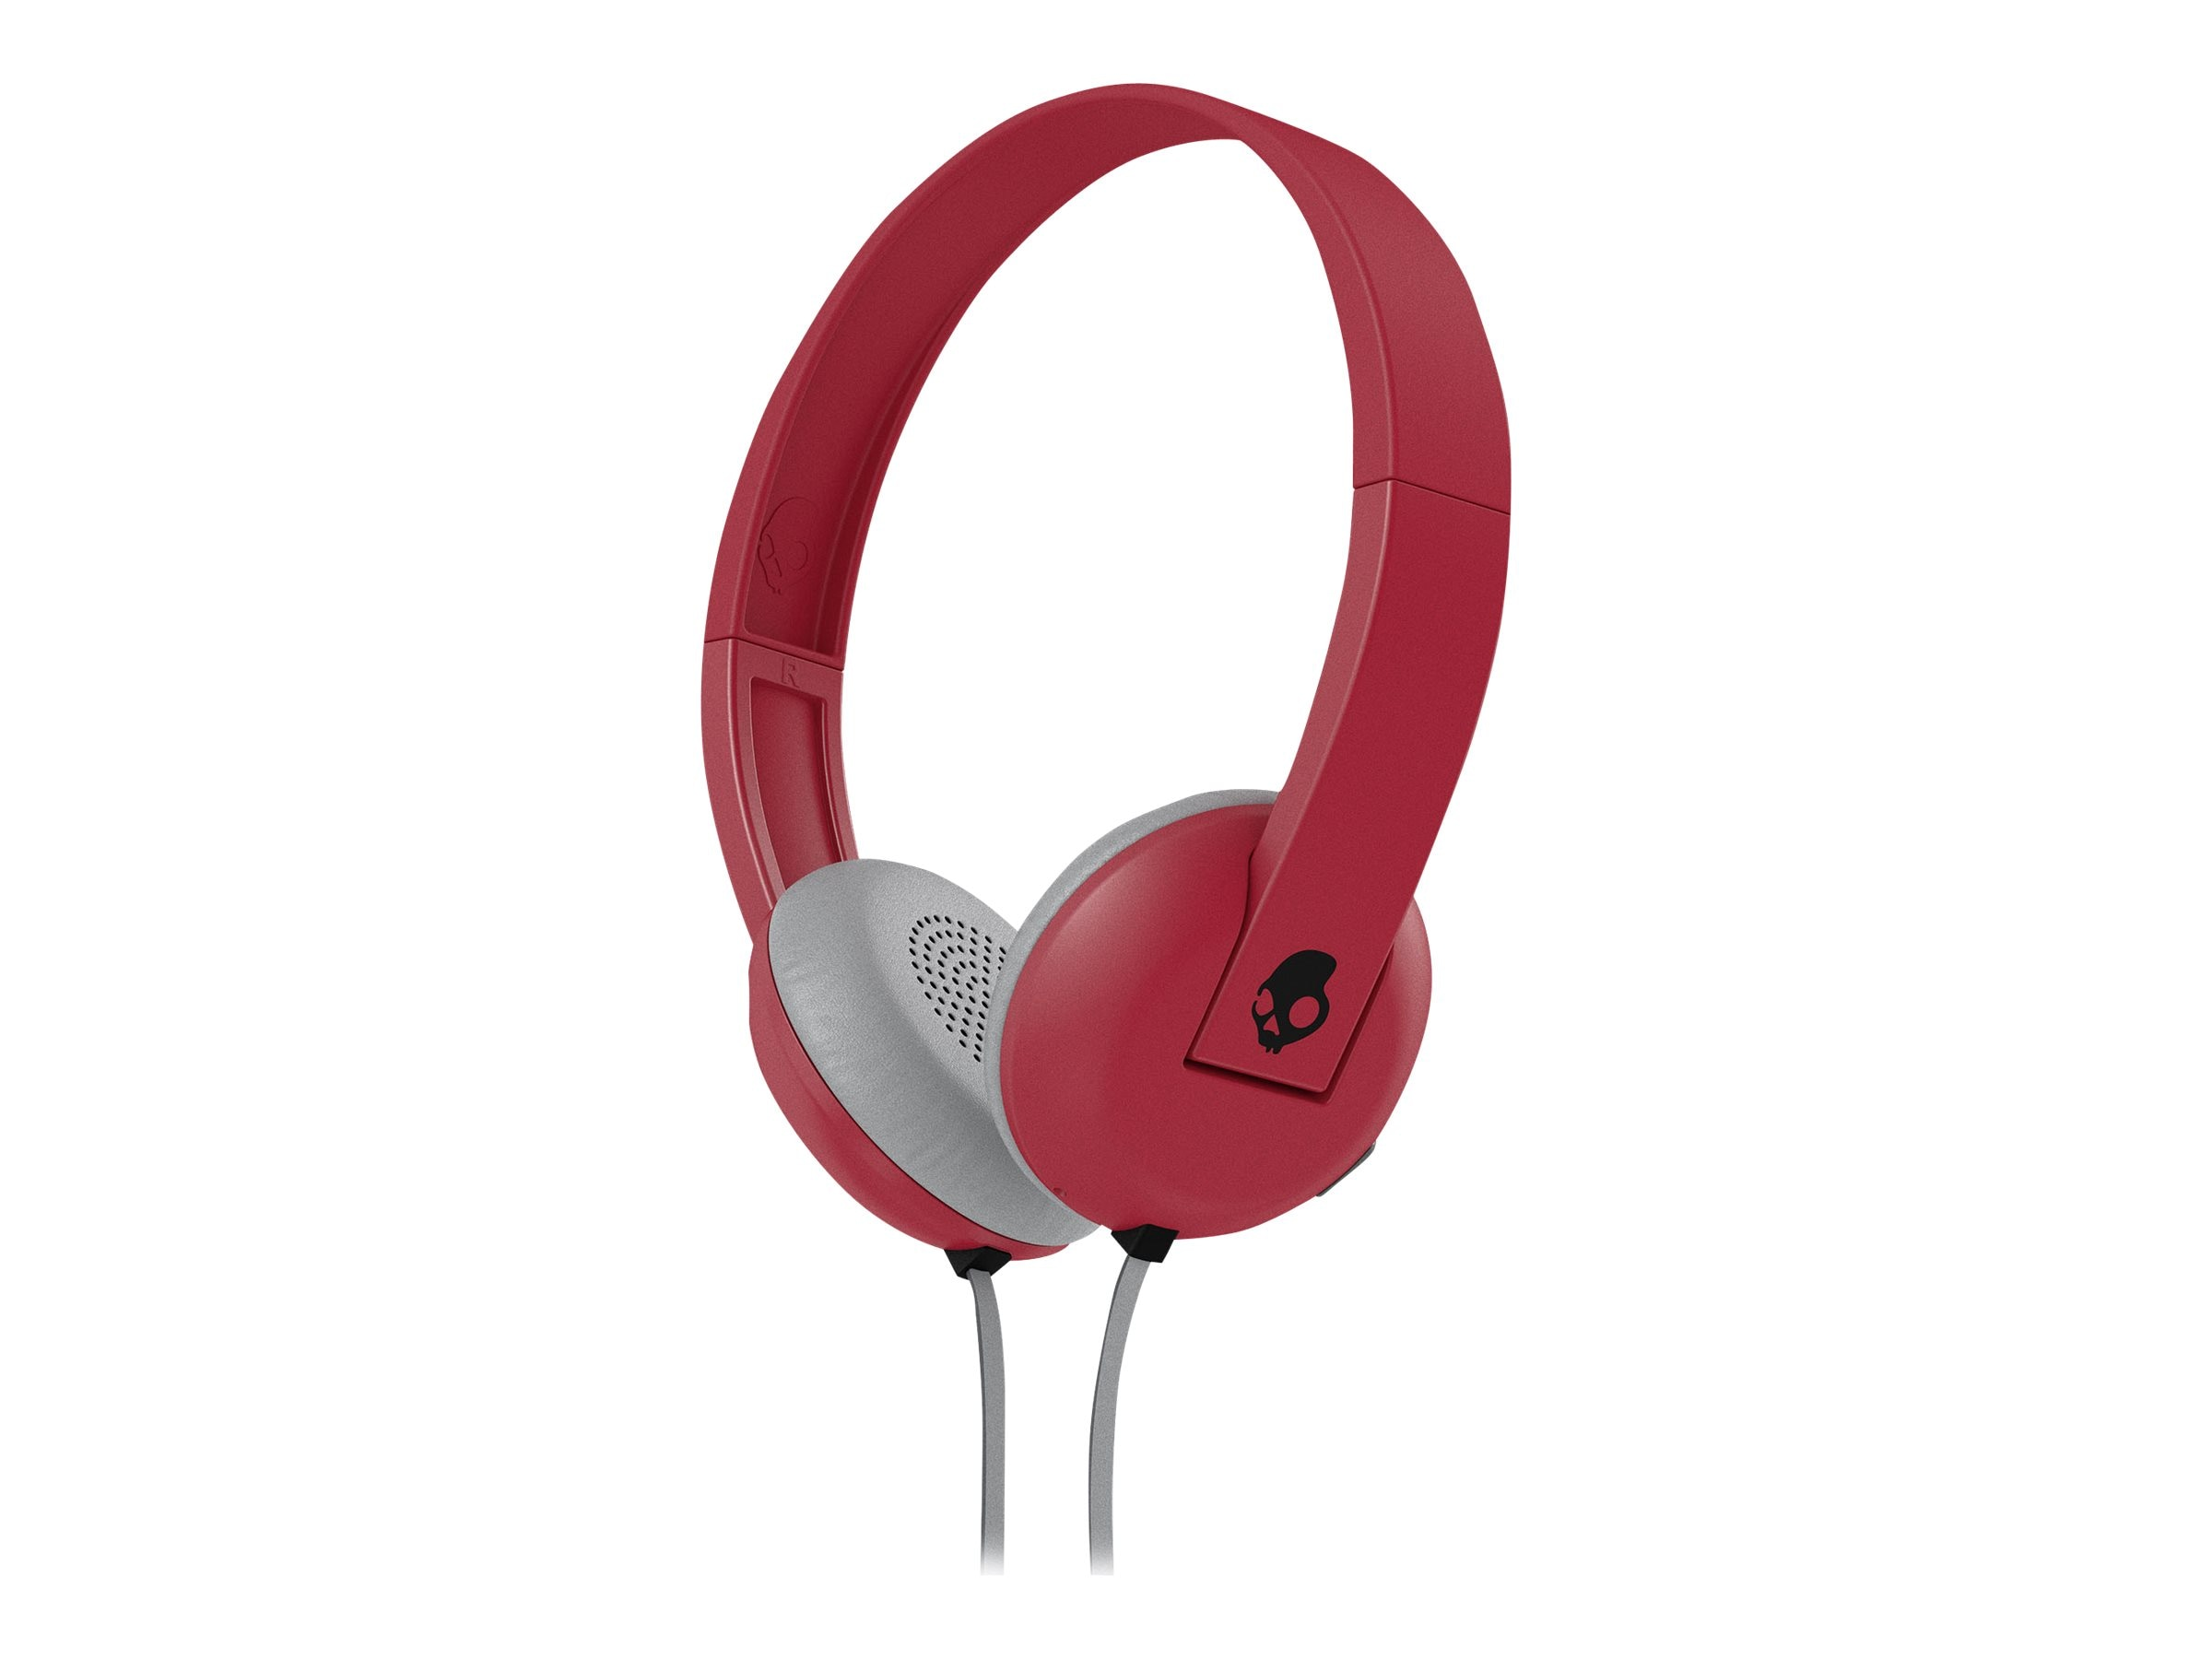 Skullcandy Uproar Headphones w  Tap Tech - Illfamed Red Black, S5URHT-462, 23836839, Headsets (w/ microphone)